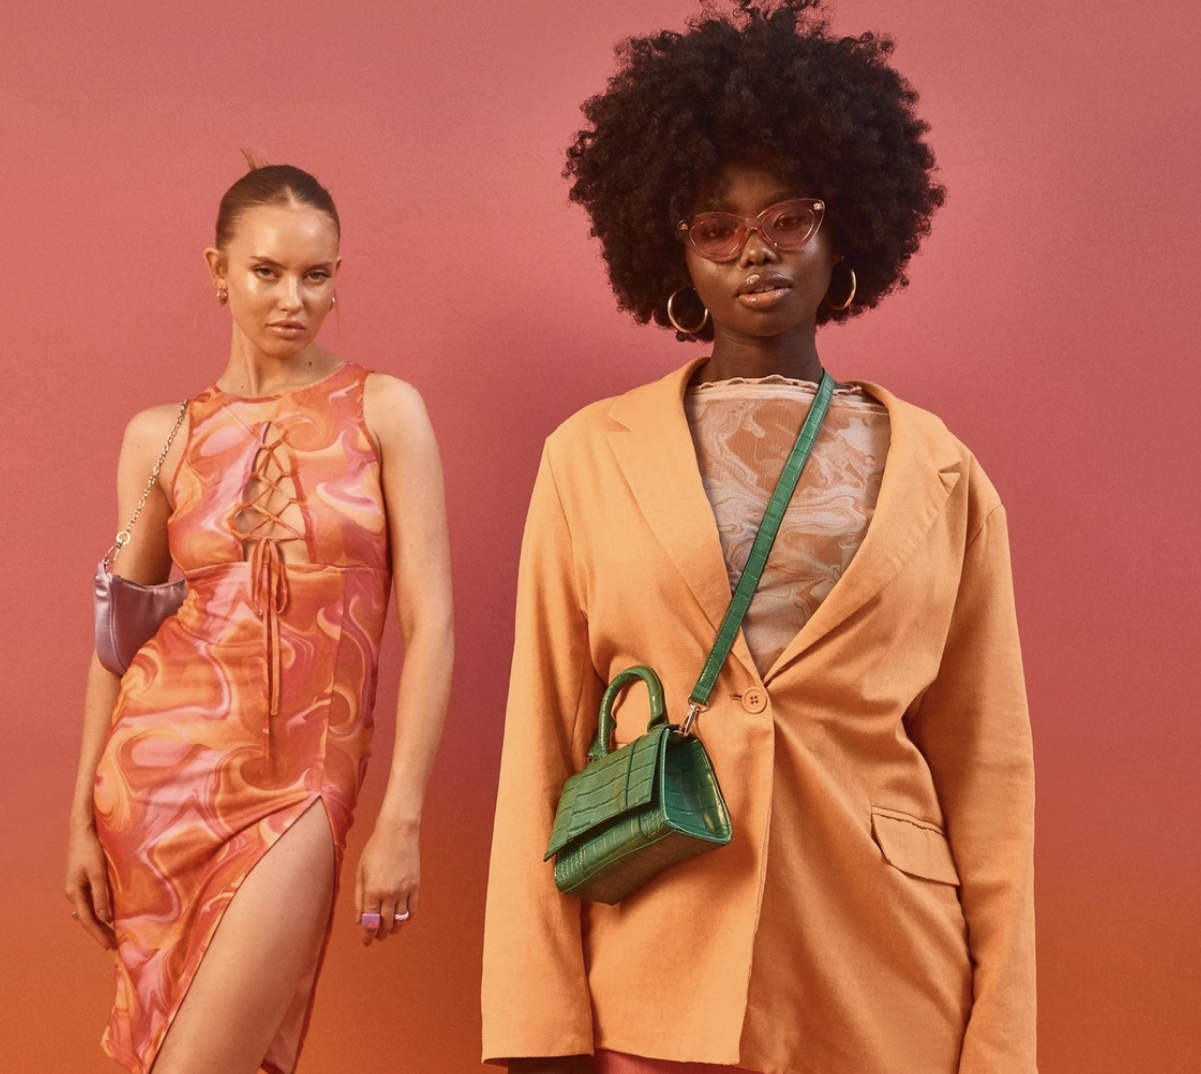 As U.K. antitrust regulators determined that JD Sports Fashion's 2019 Footasylum acquisition poses problems for competition in sports-inspired apparel and footwear, the retailer may have its hand in investing in fast-fashion brand Missguided.